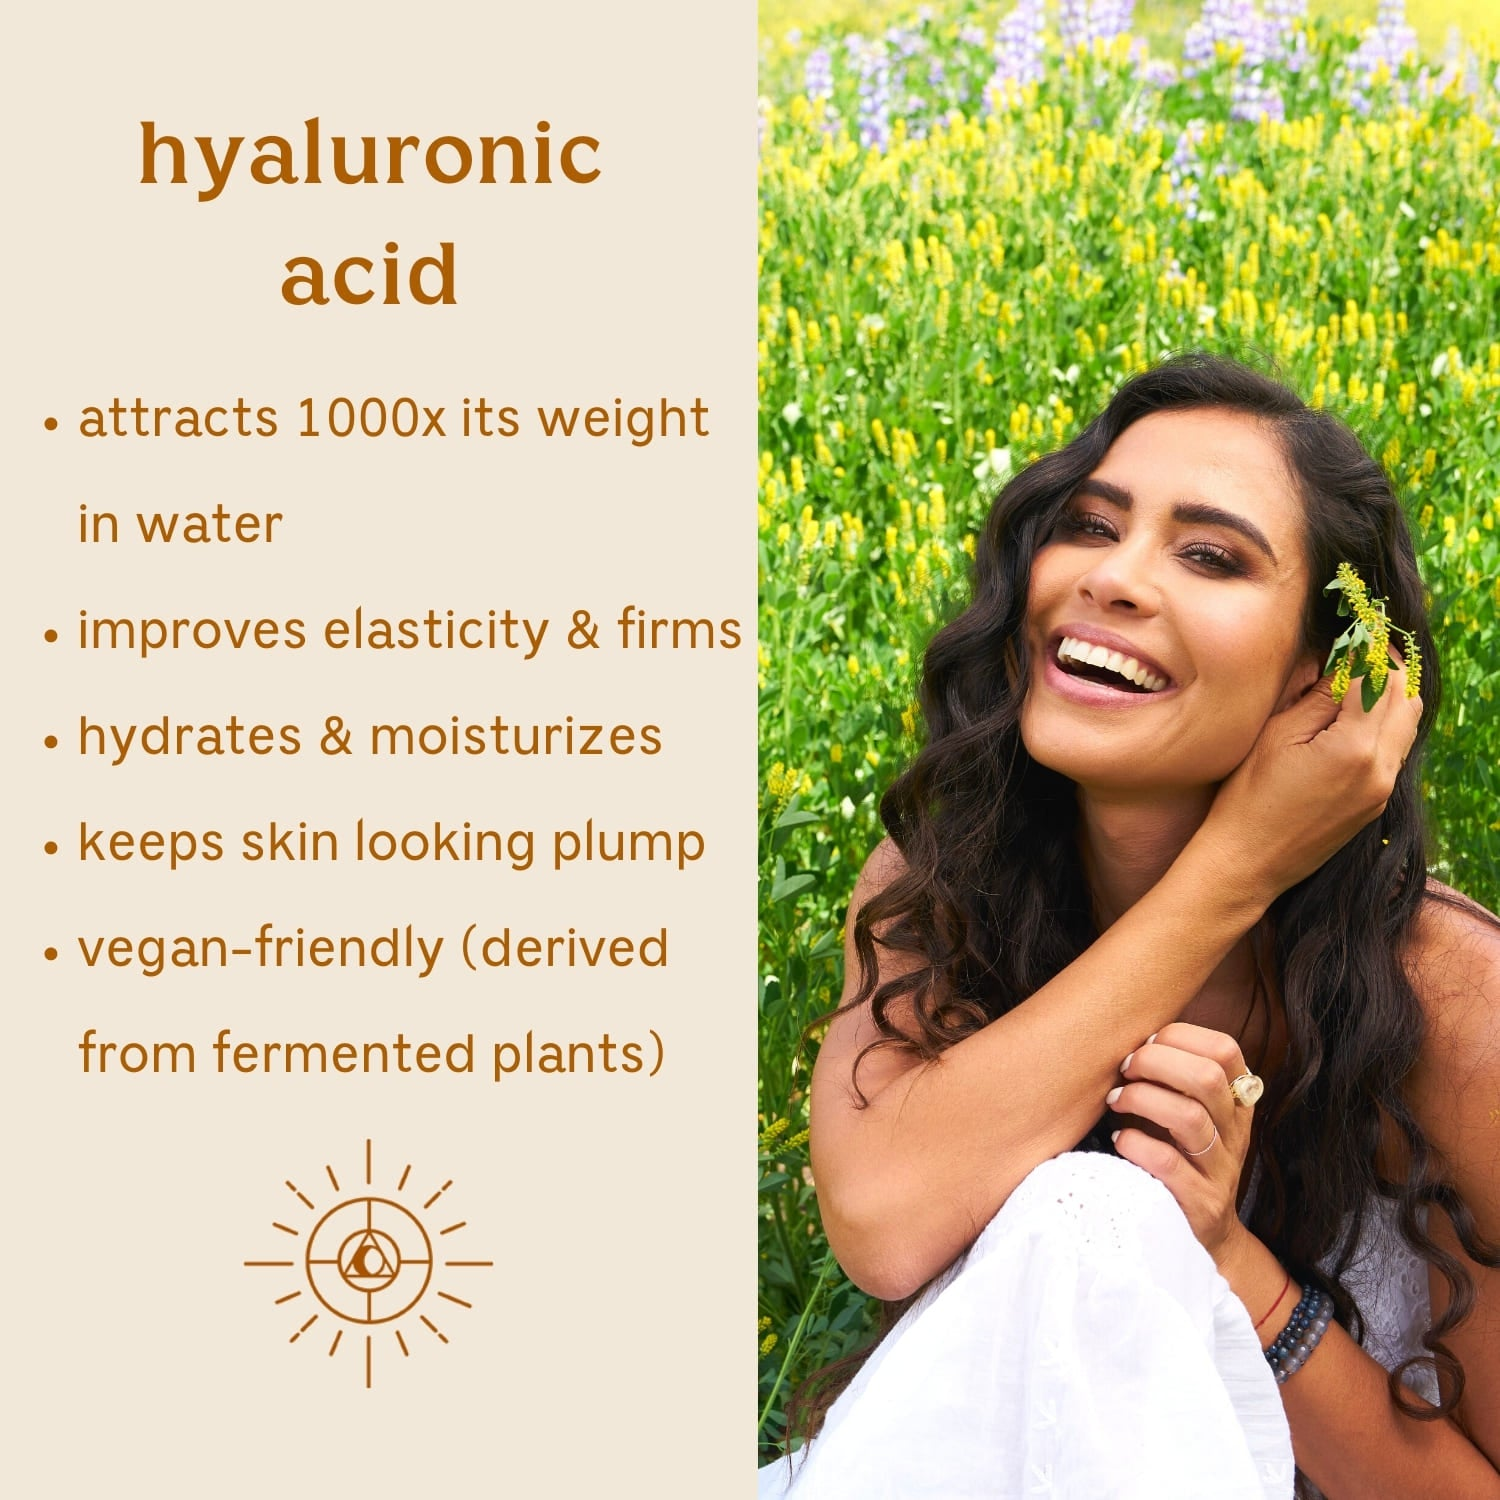 Solluna's Feel Good Eye Cream key ingredient benefit description. Hyaluronic Acid: Attracts 1000x its weight in water, Improves elasticity & firms, Hydrates & moisturizes, Keeps skin looking plump, Vegan-friendly (derived from fermented plants)